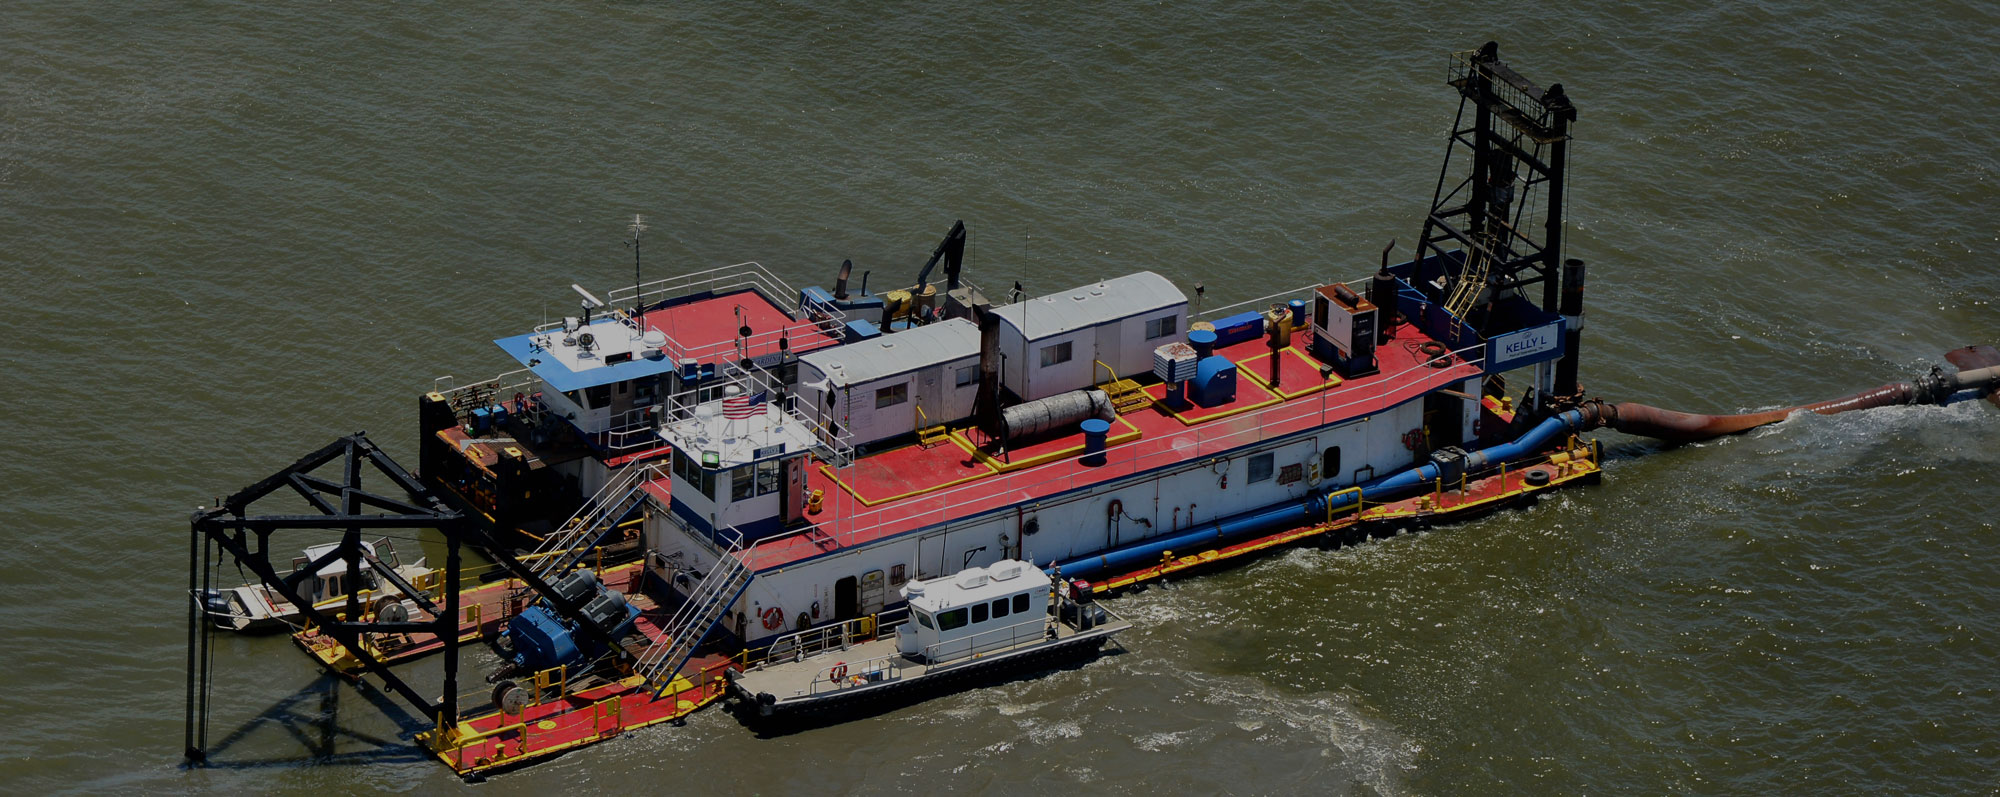 Home - Inland Dredging Co